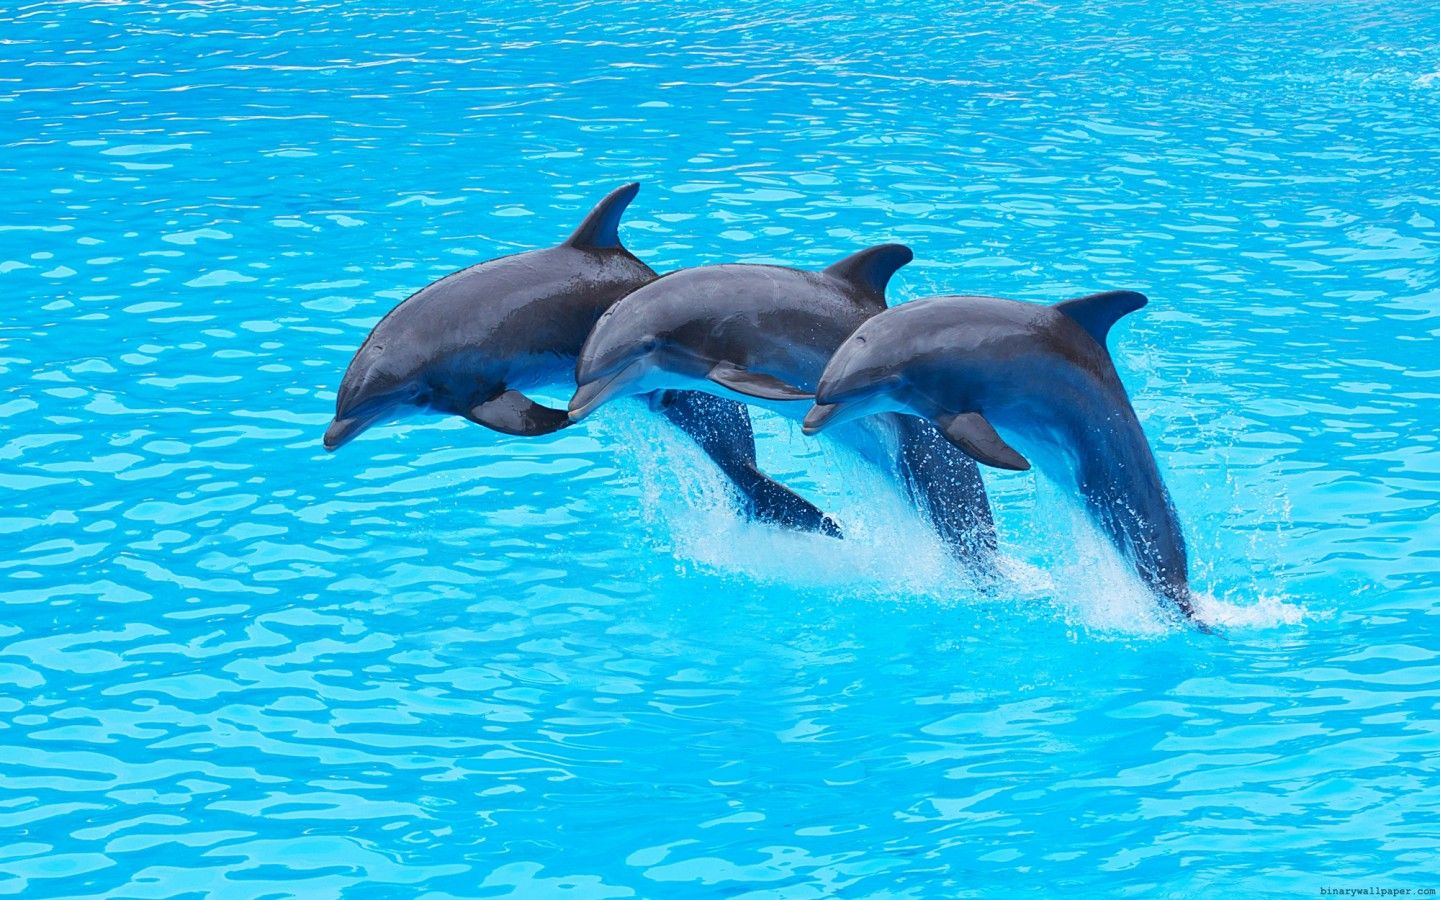 DolphinsWallpaper.jpg (1440×900) Dolphin images